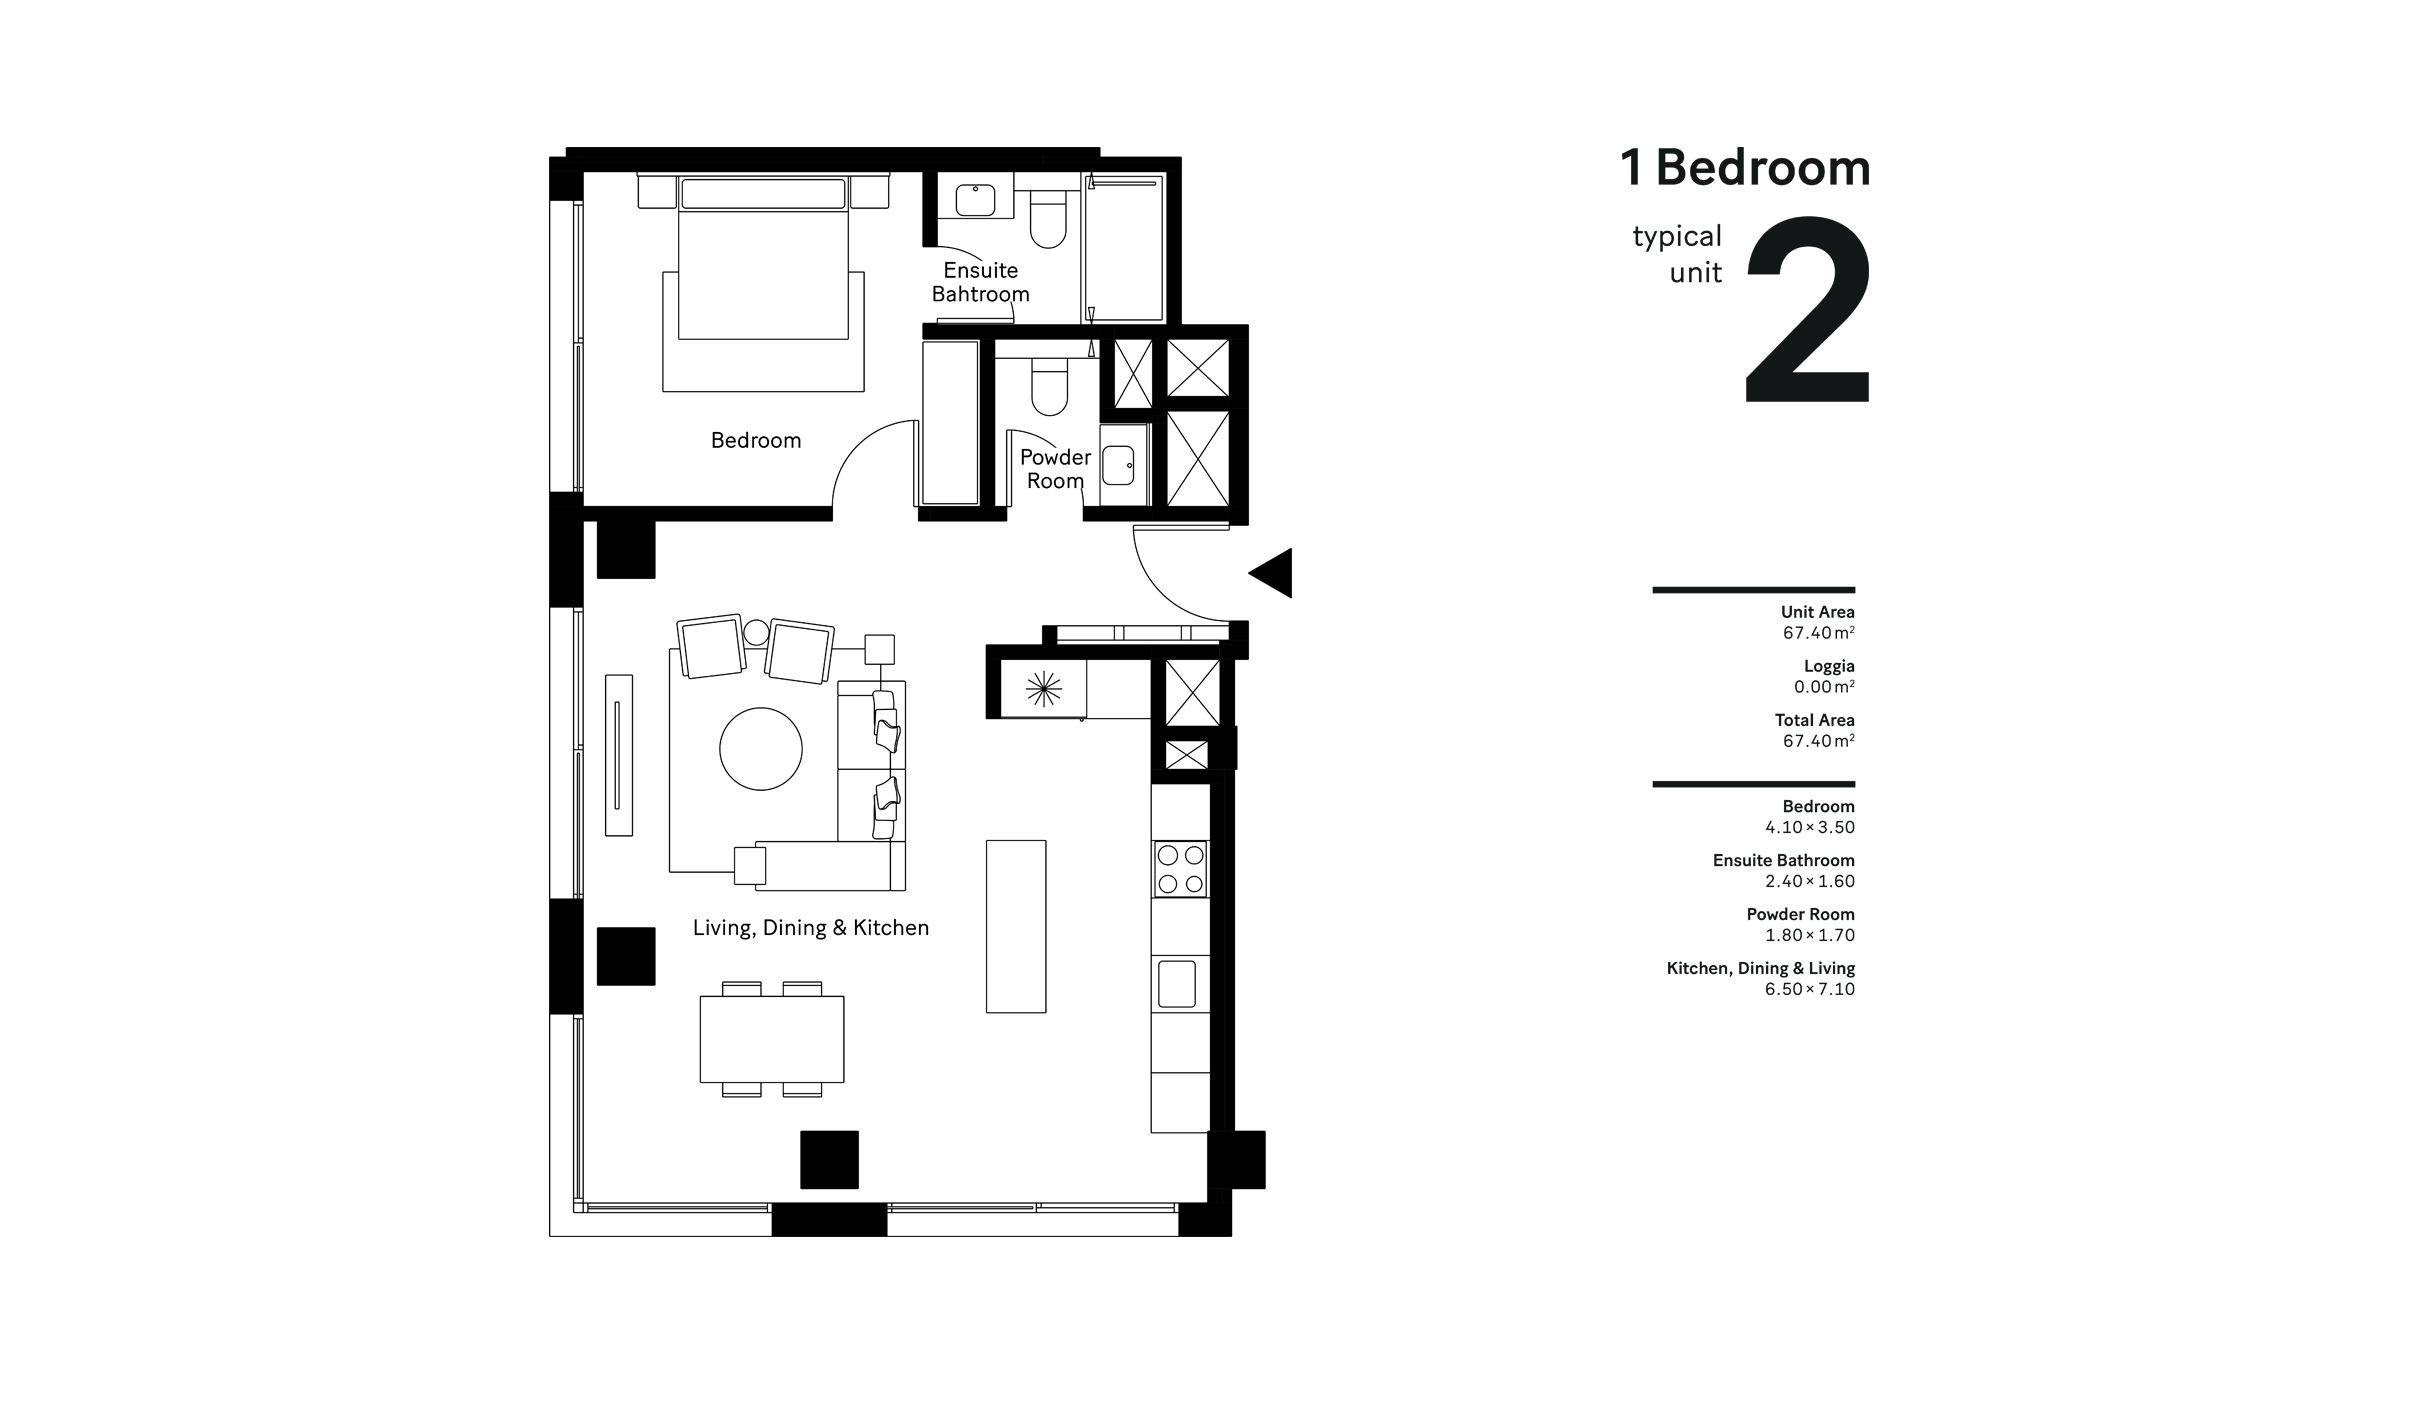 1 Bedroom Typical Unit 2, Size 67.40 Sqm